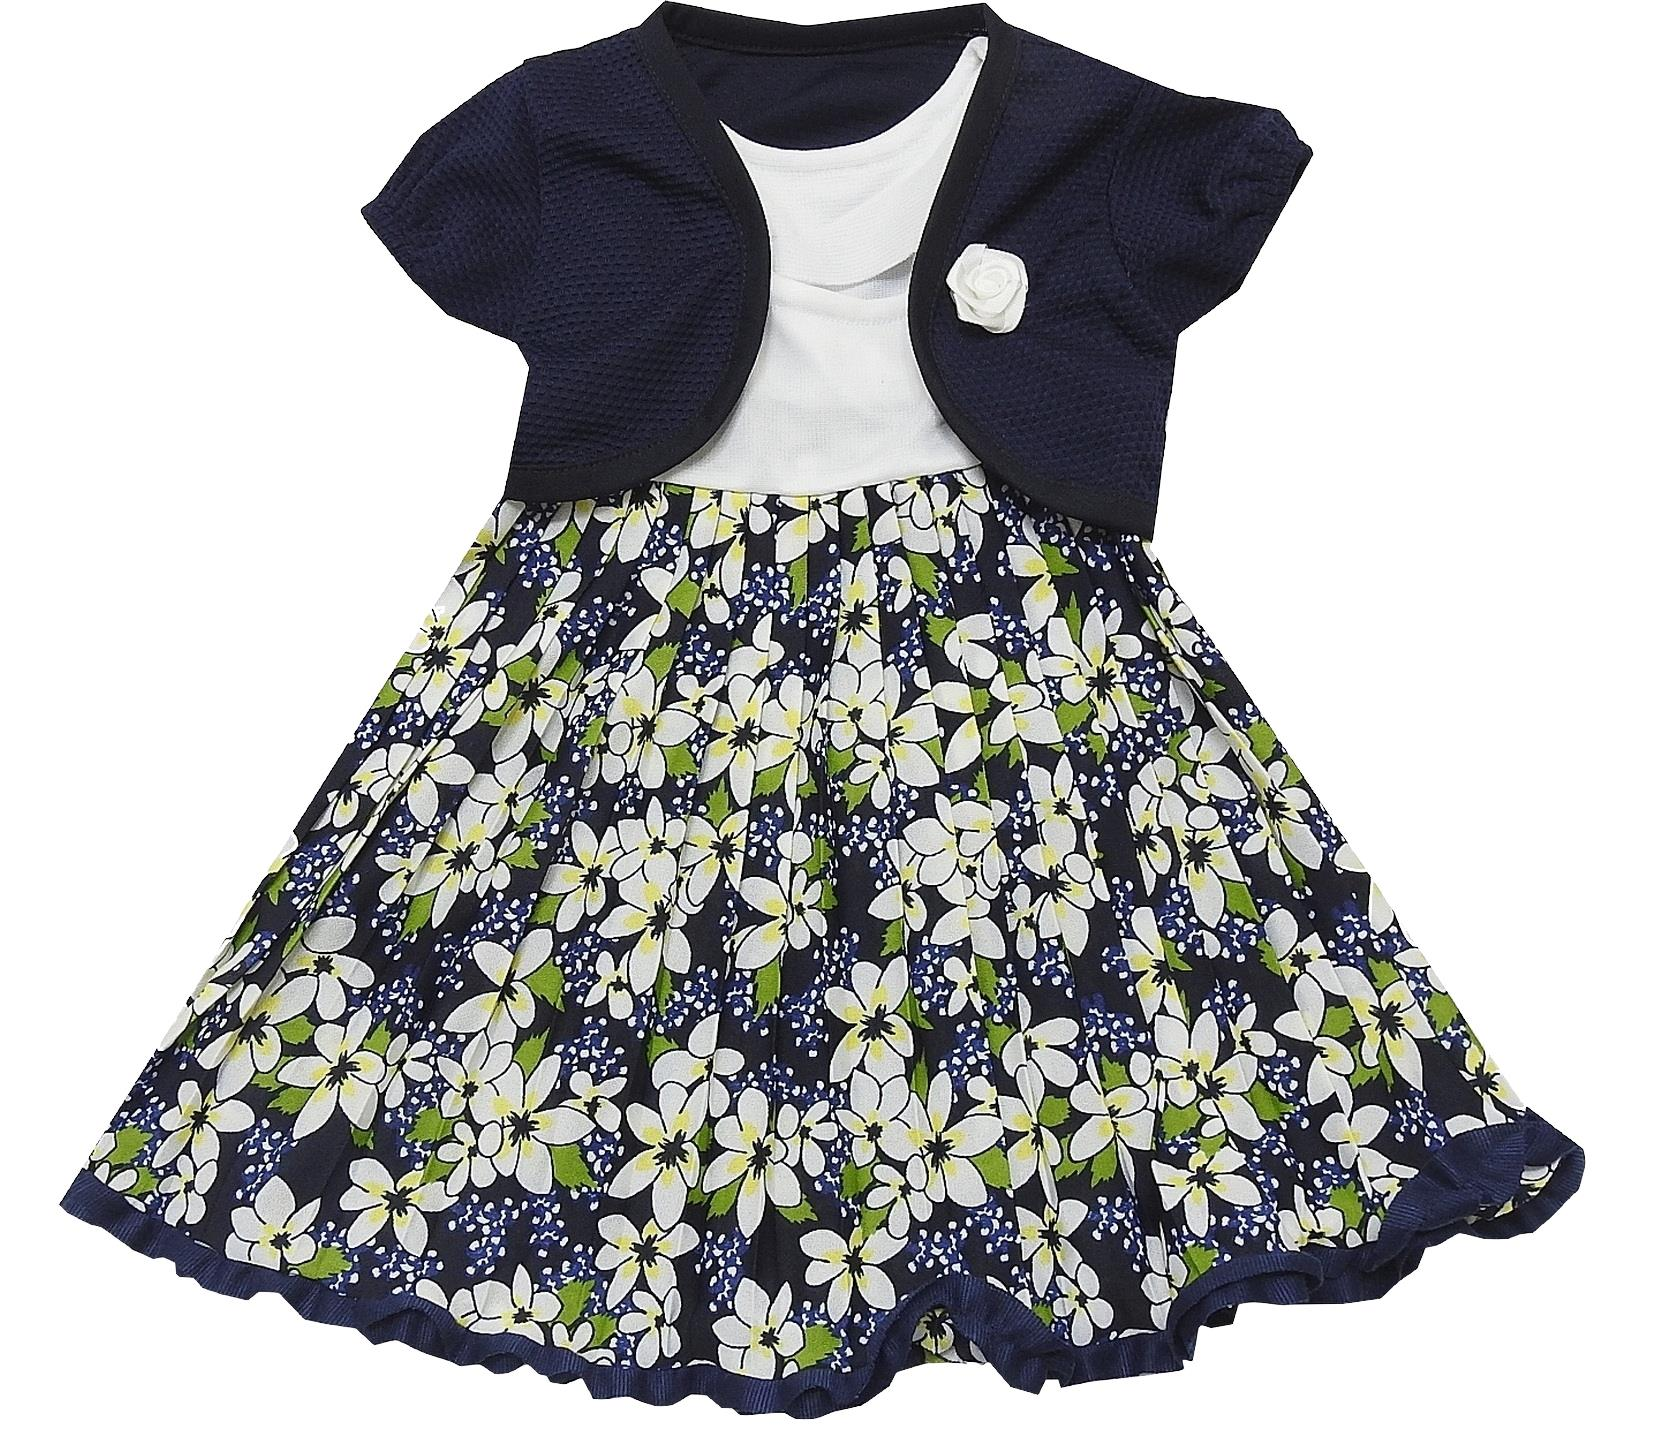 FLOWERY SPOTTY EMBROIDERY ASSORTED DRESSES (1-2-3 AGE)